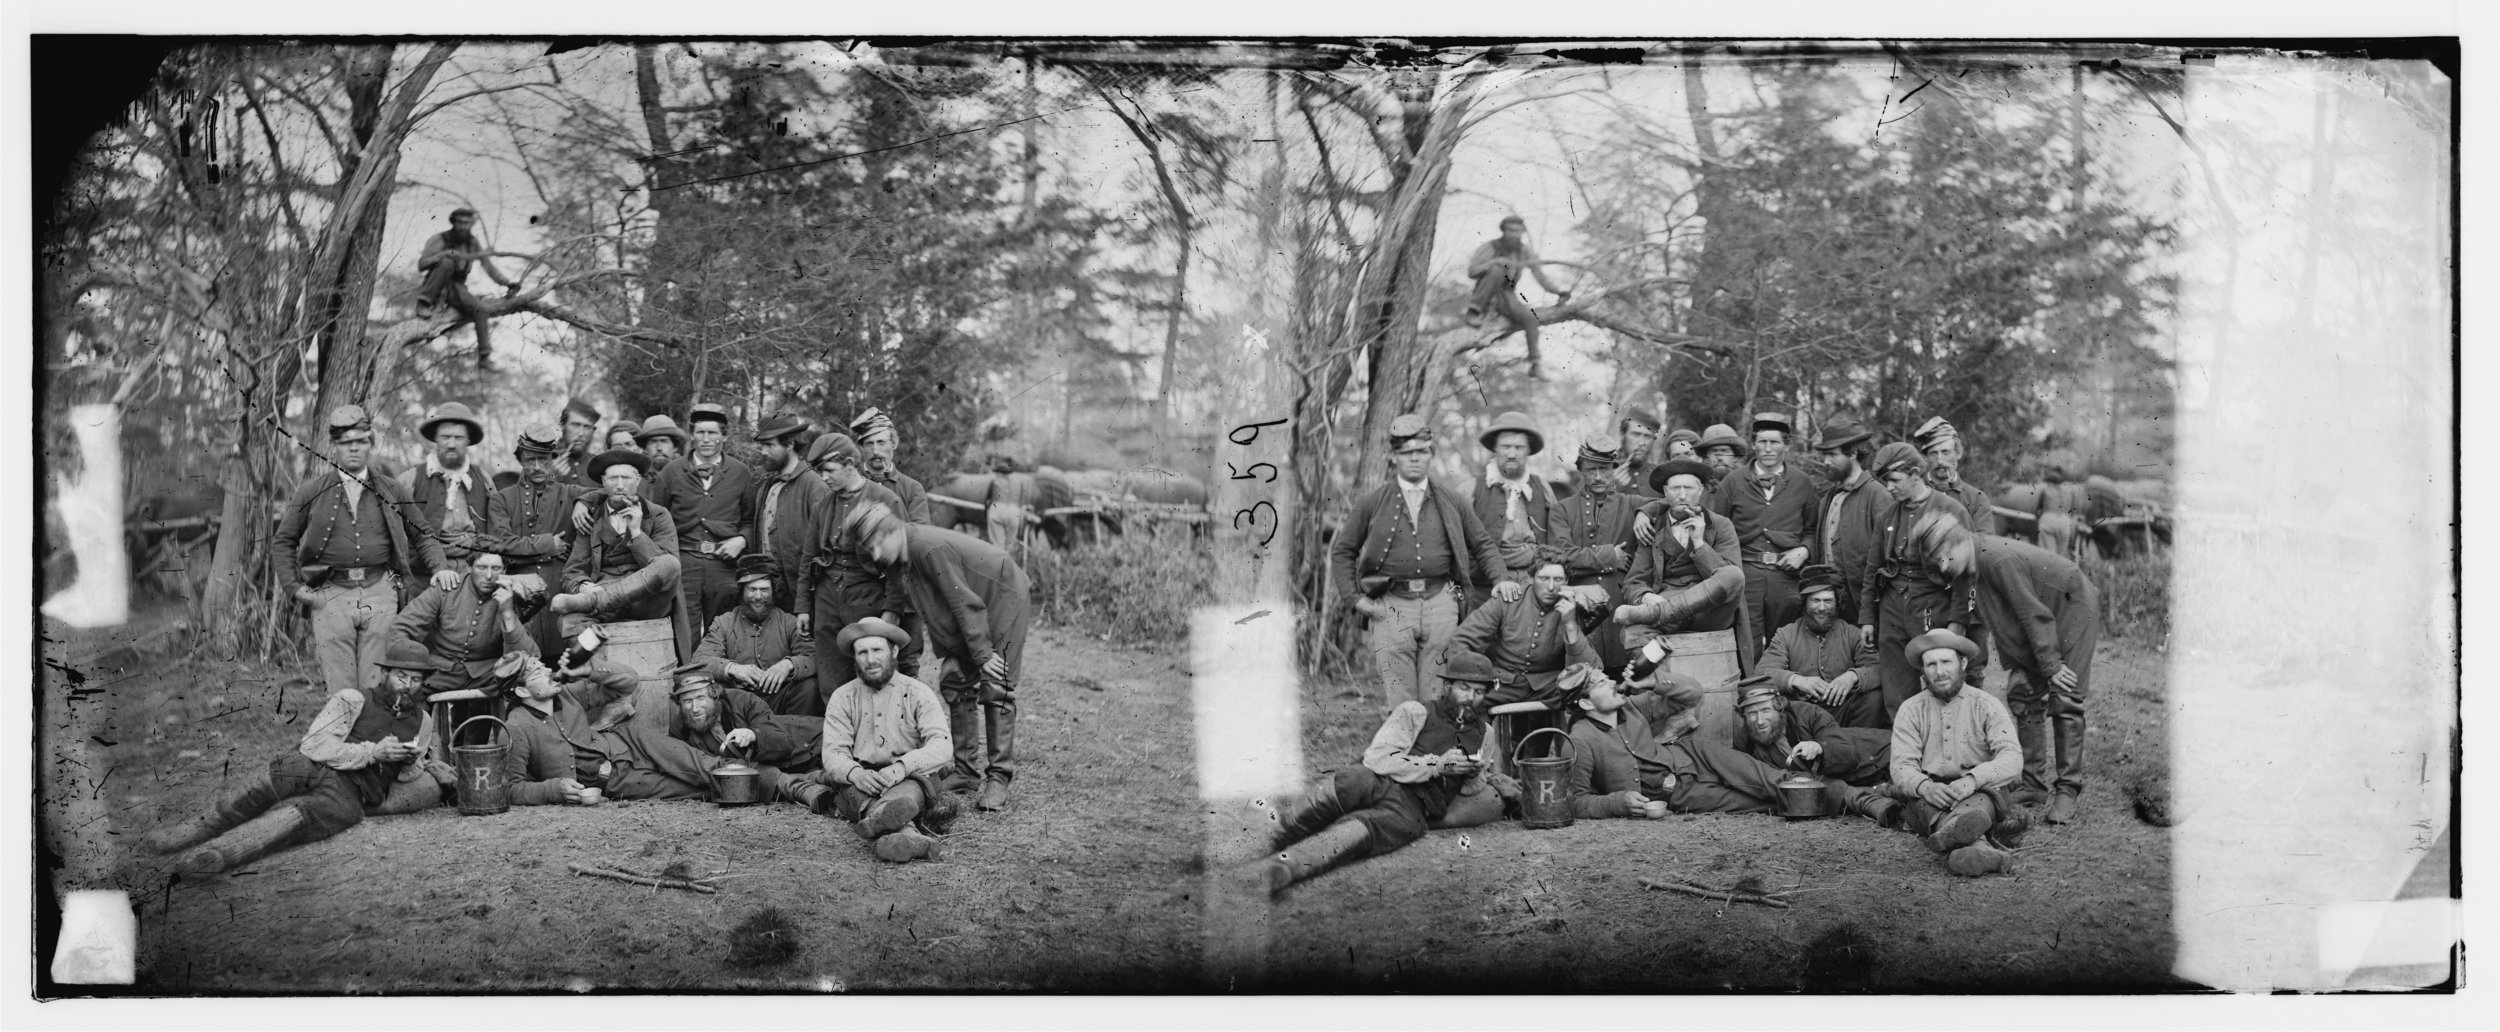 Earliest Known Images of People Smiling, Union soldiers at Yorktown, Virginia, by James F. Gibson, 1862